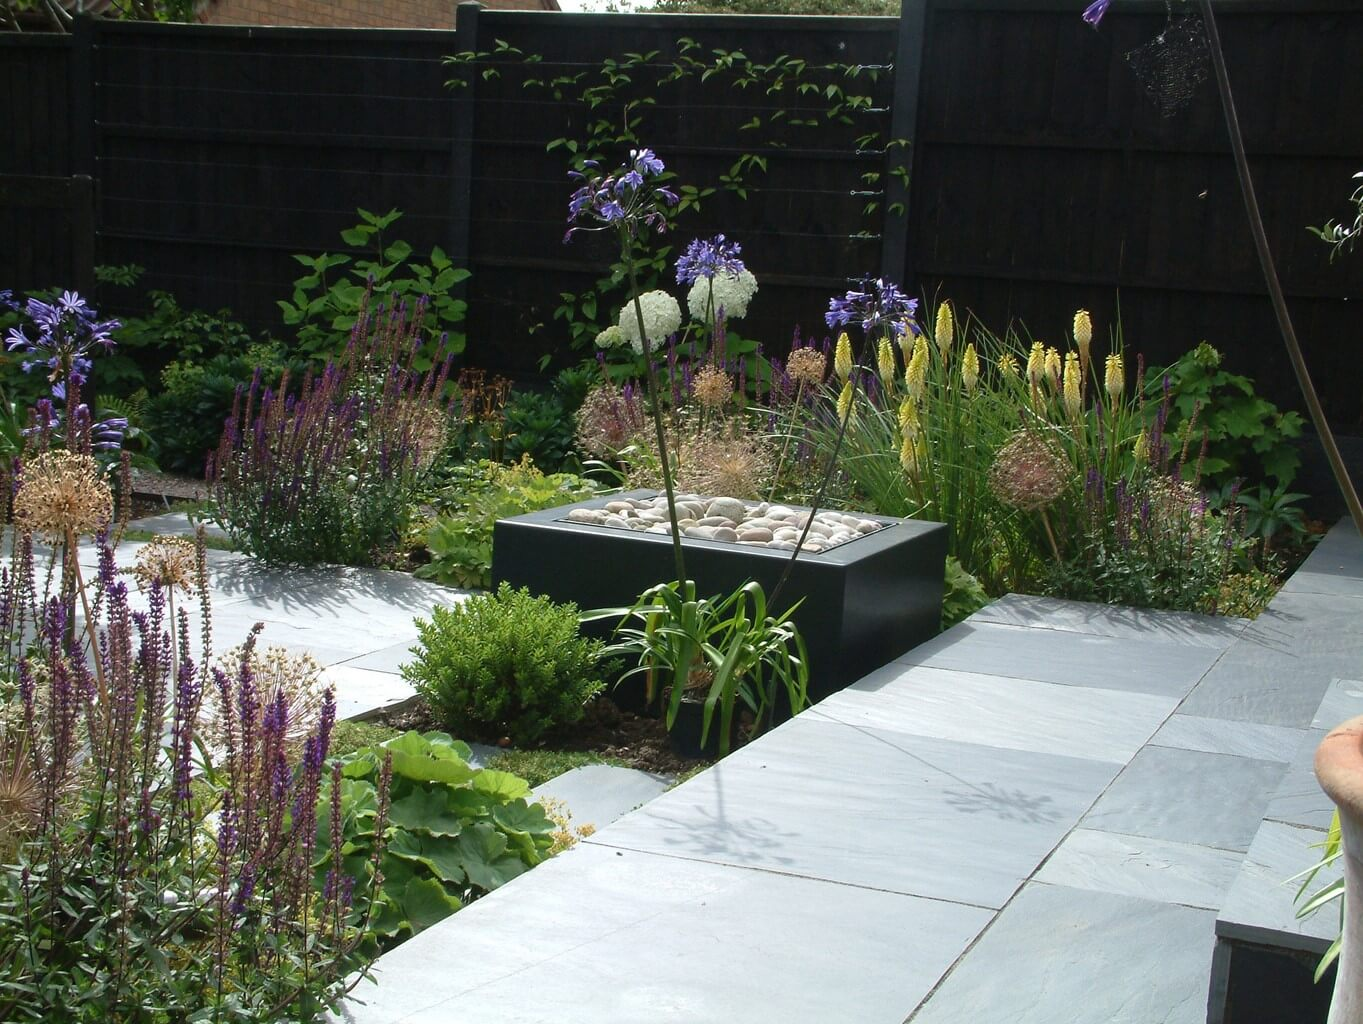 Chipperfield garden design and build services JS Scapes